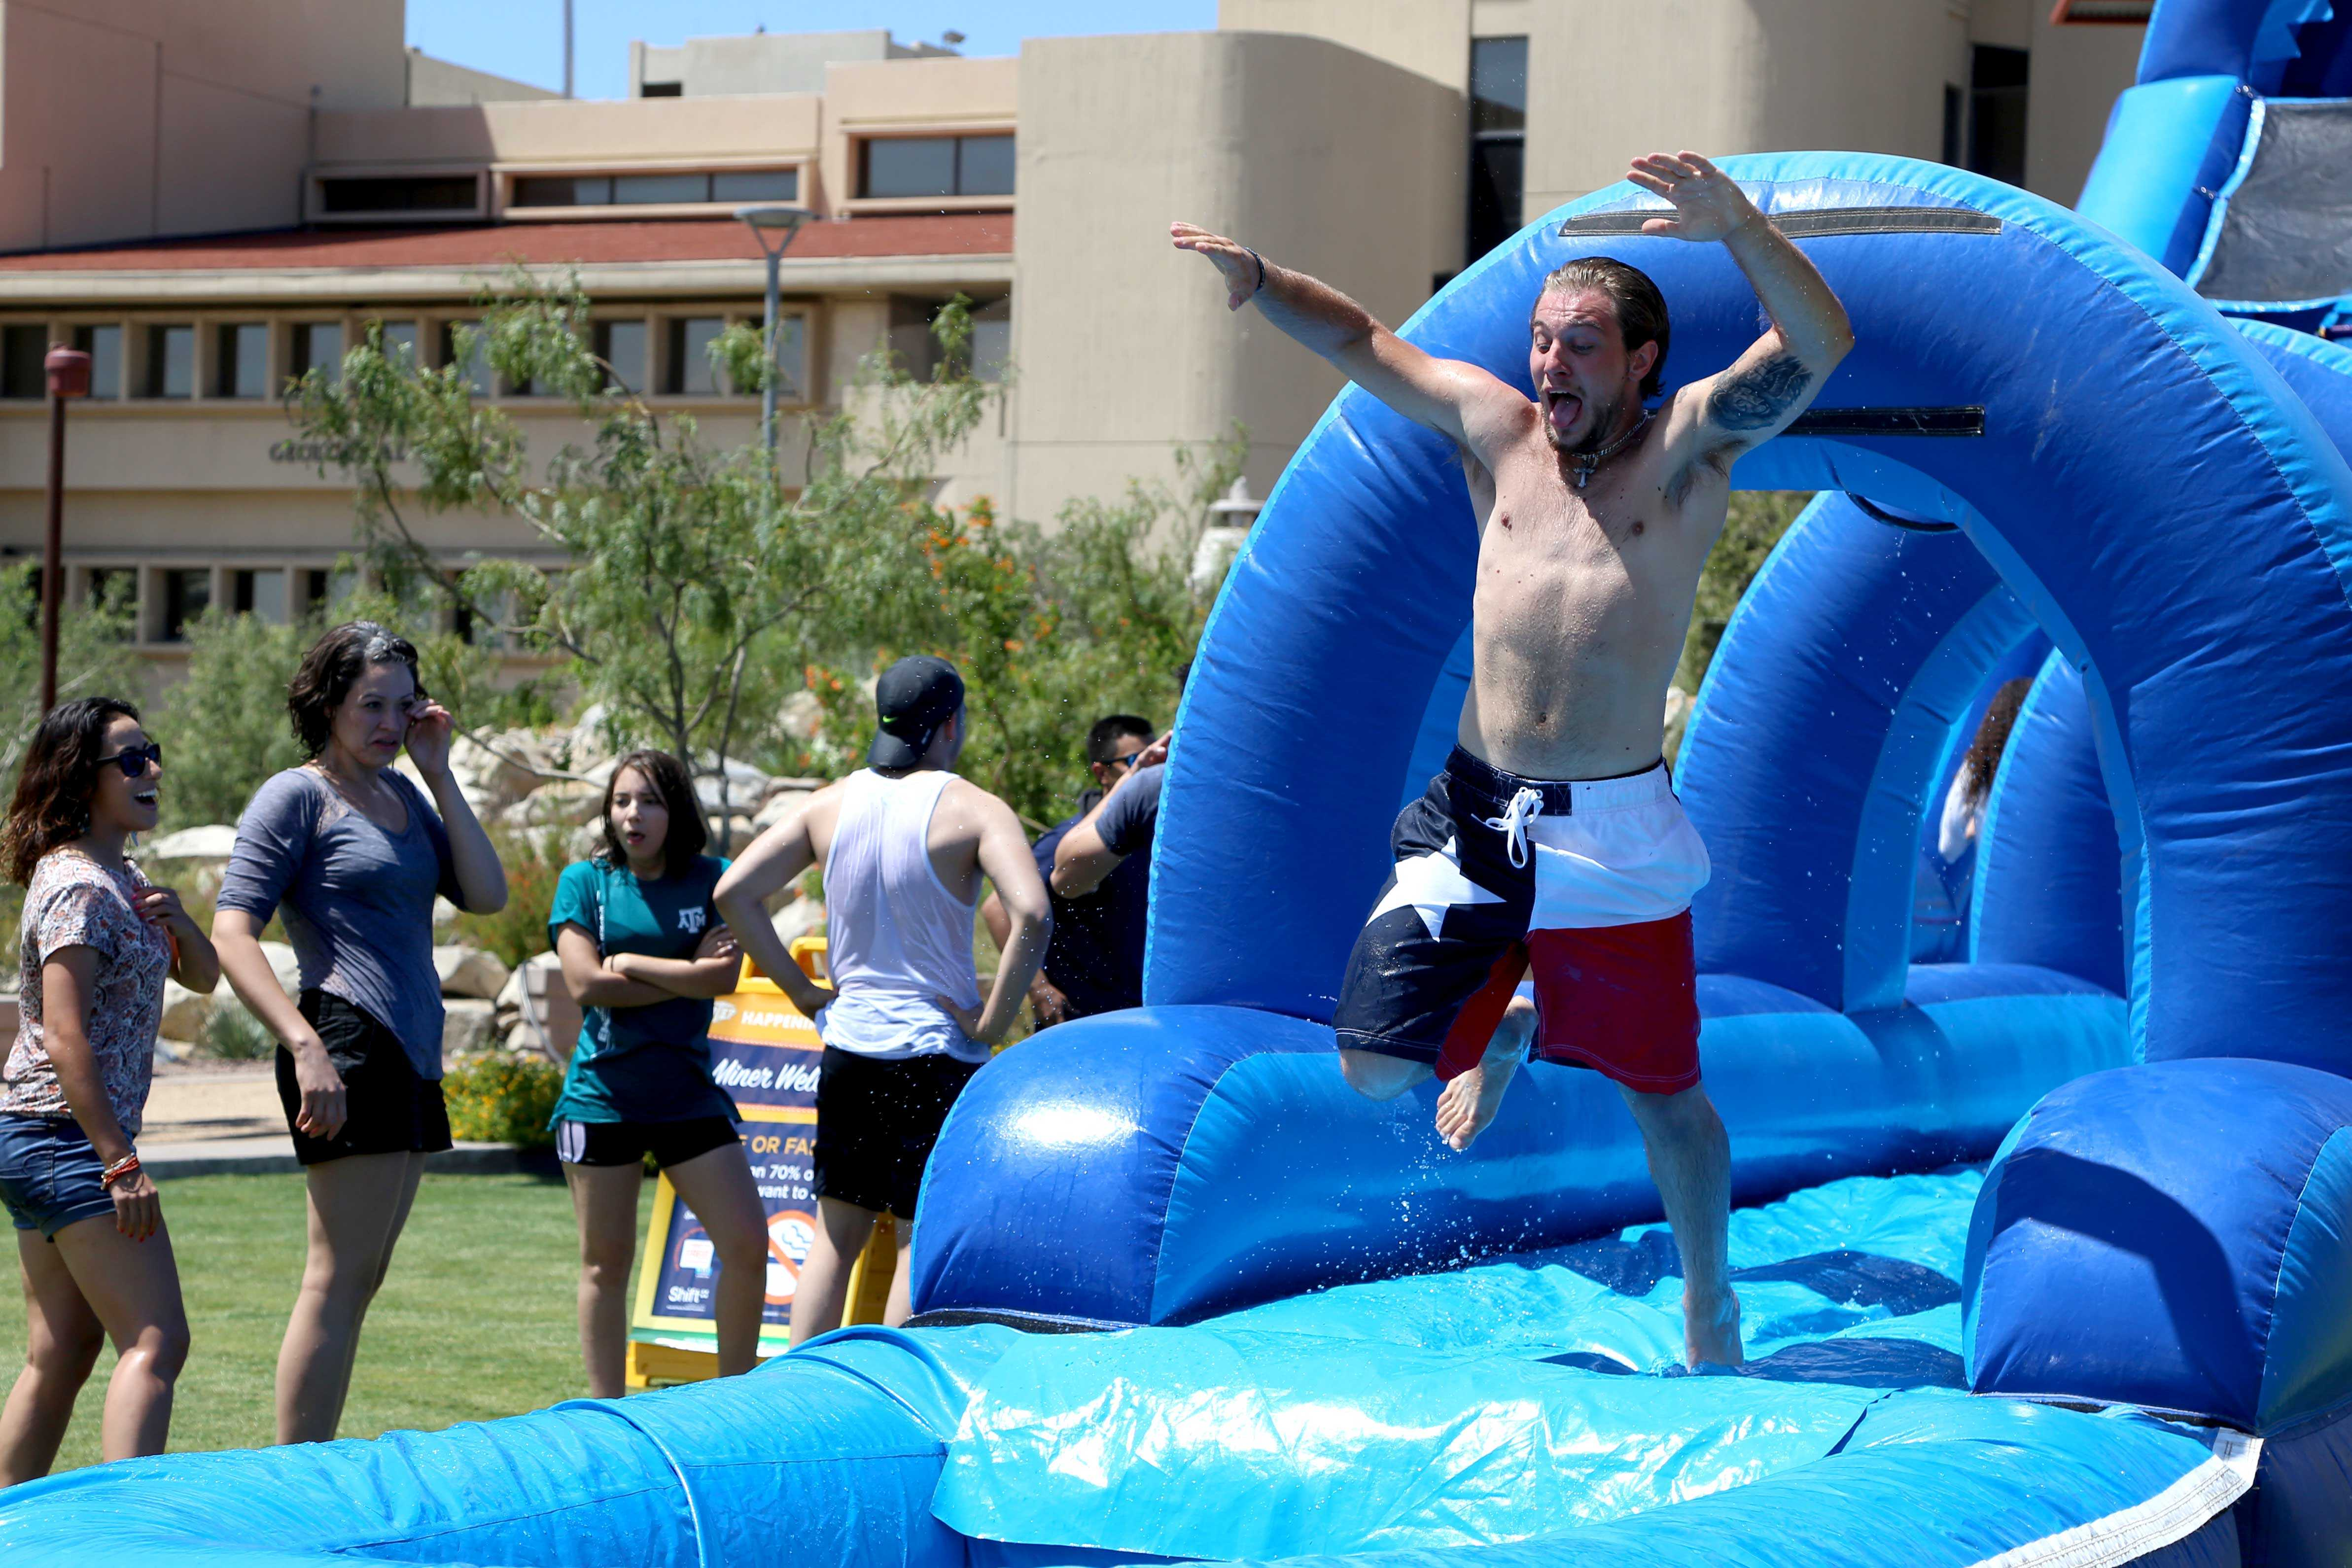 Sophomore kinesiology major Lukas Znosko makes a jump from the water slide into the little pool on the third day of school at the Centennial PLaza.